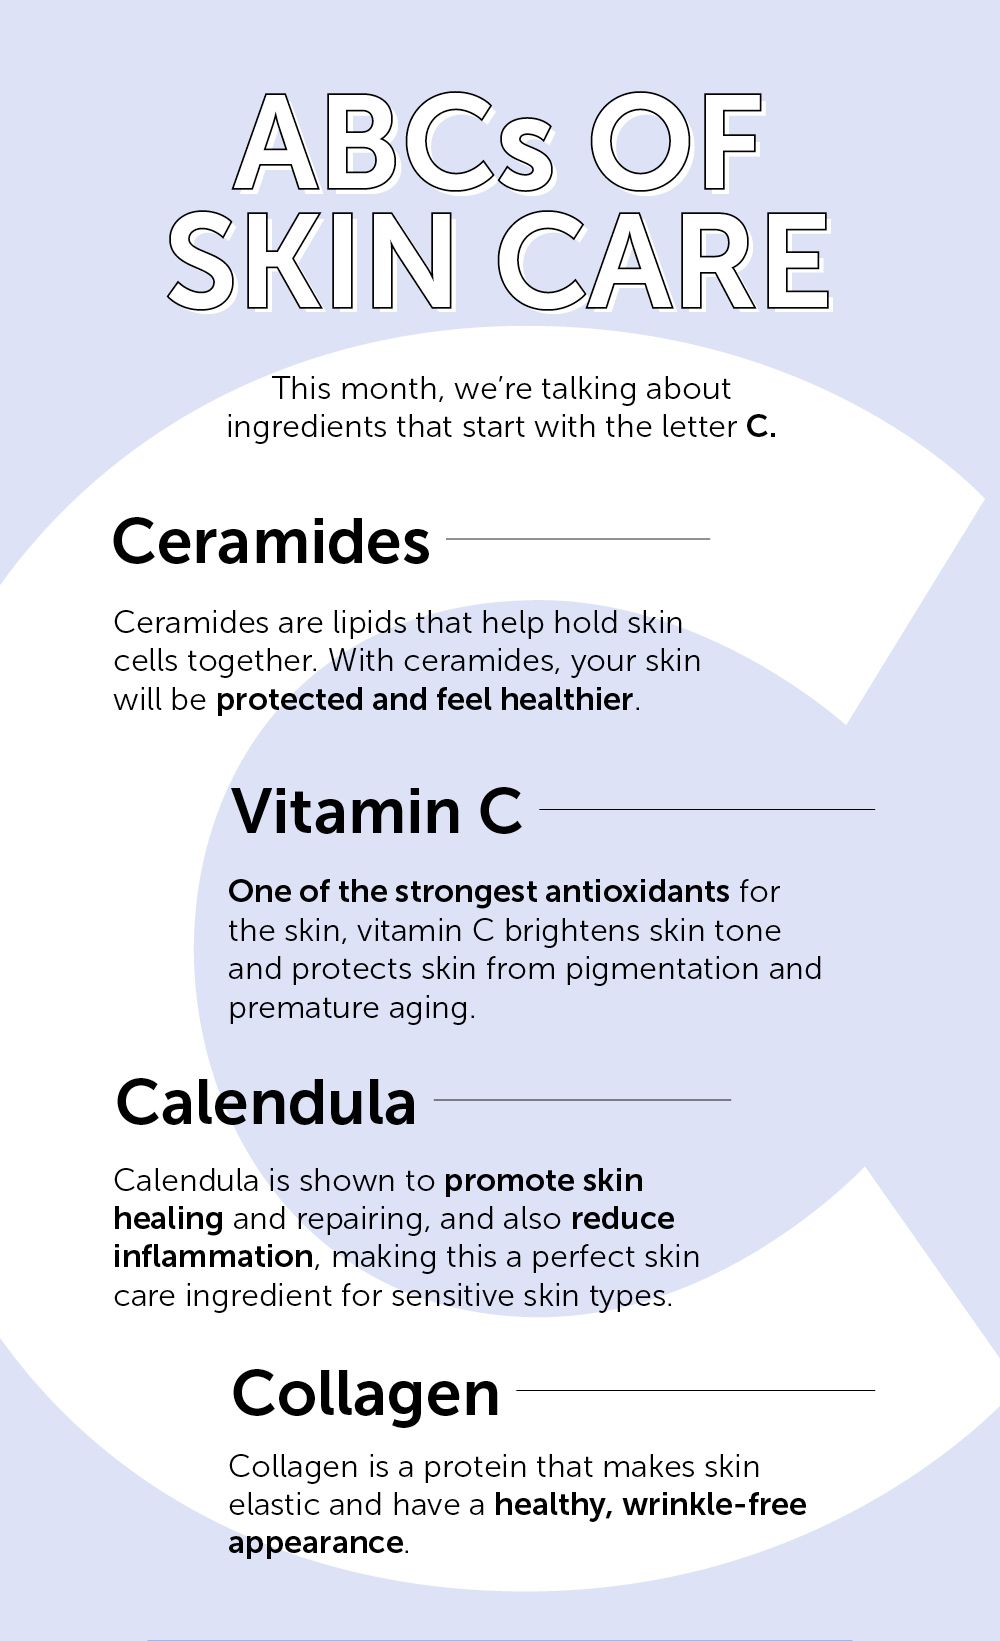 Using 2 Types Of Skin Care Ingredients Together?